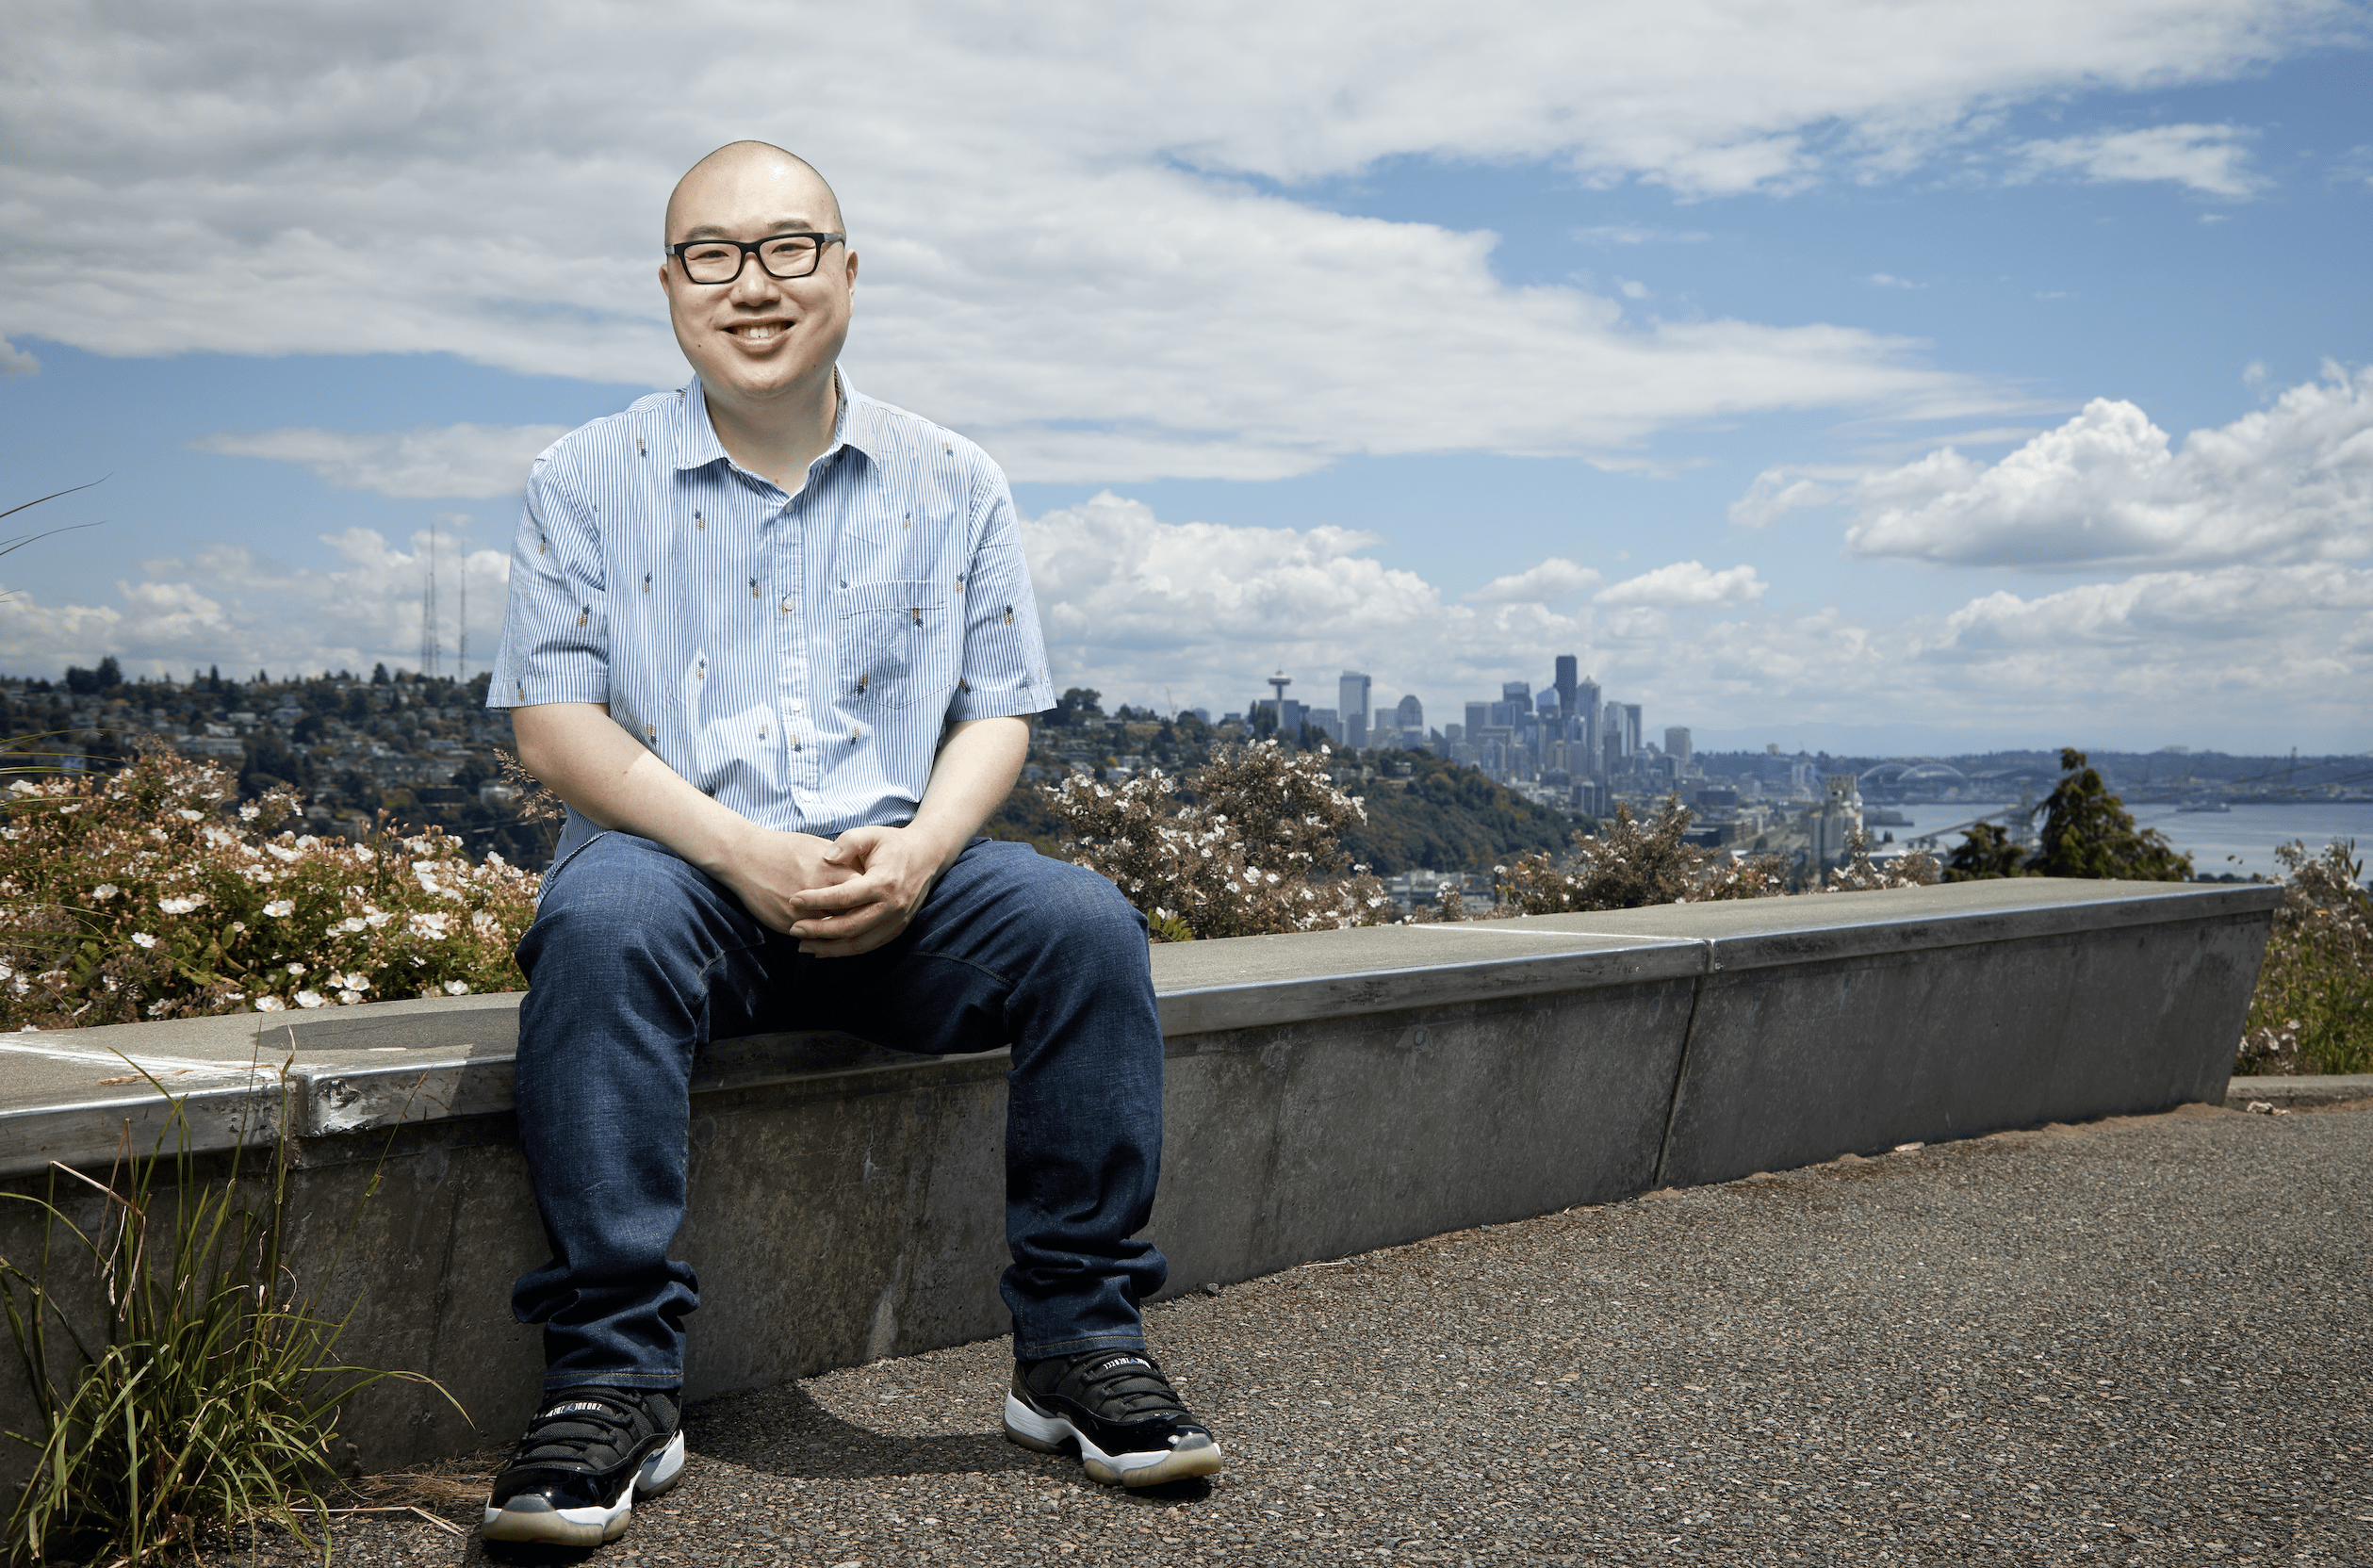 A man wearing glasses sitting on a ledge with a view of the city behind him